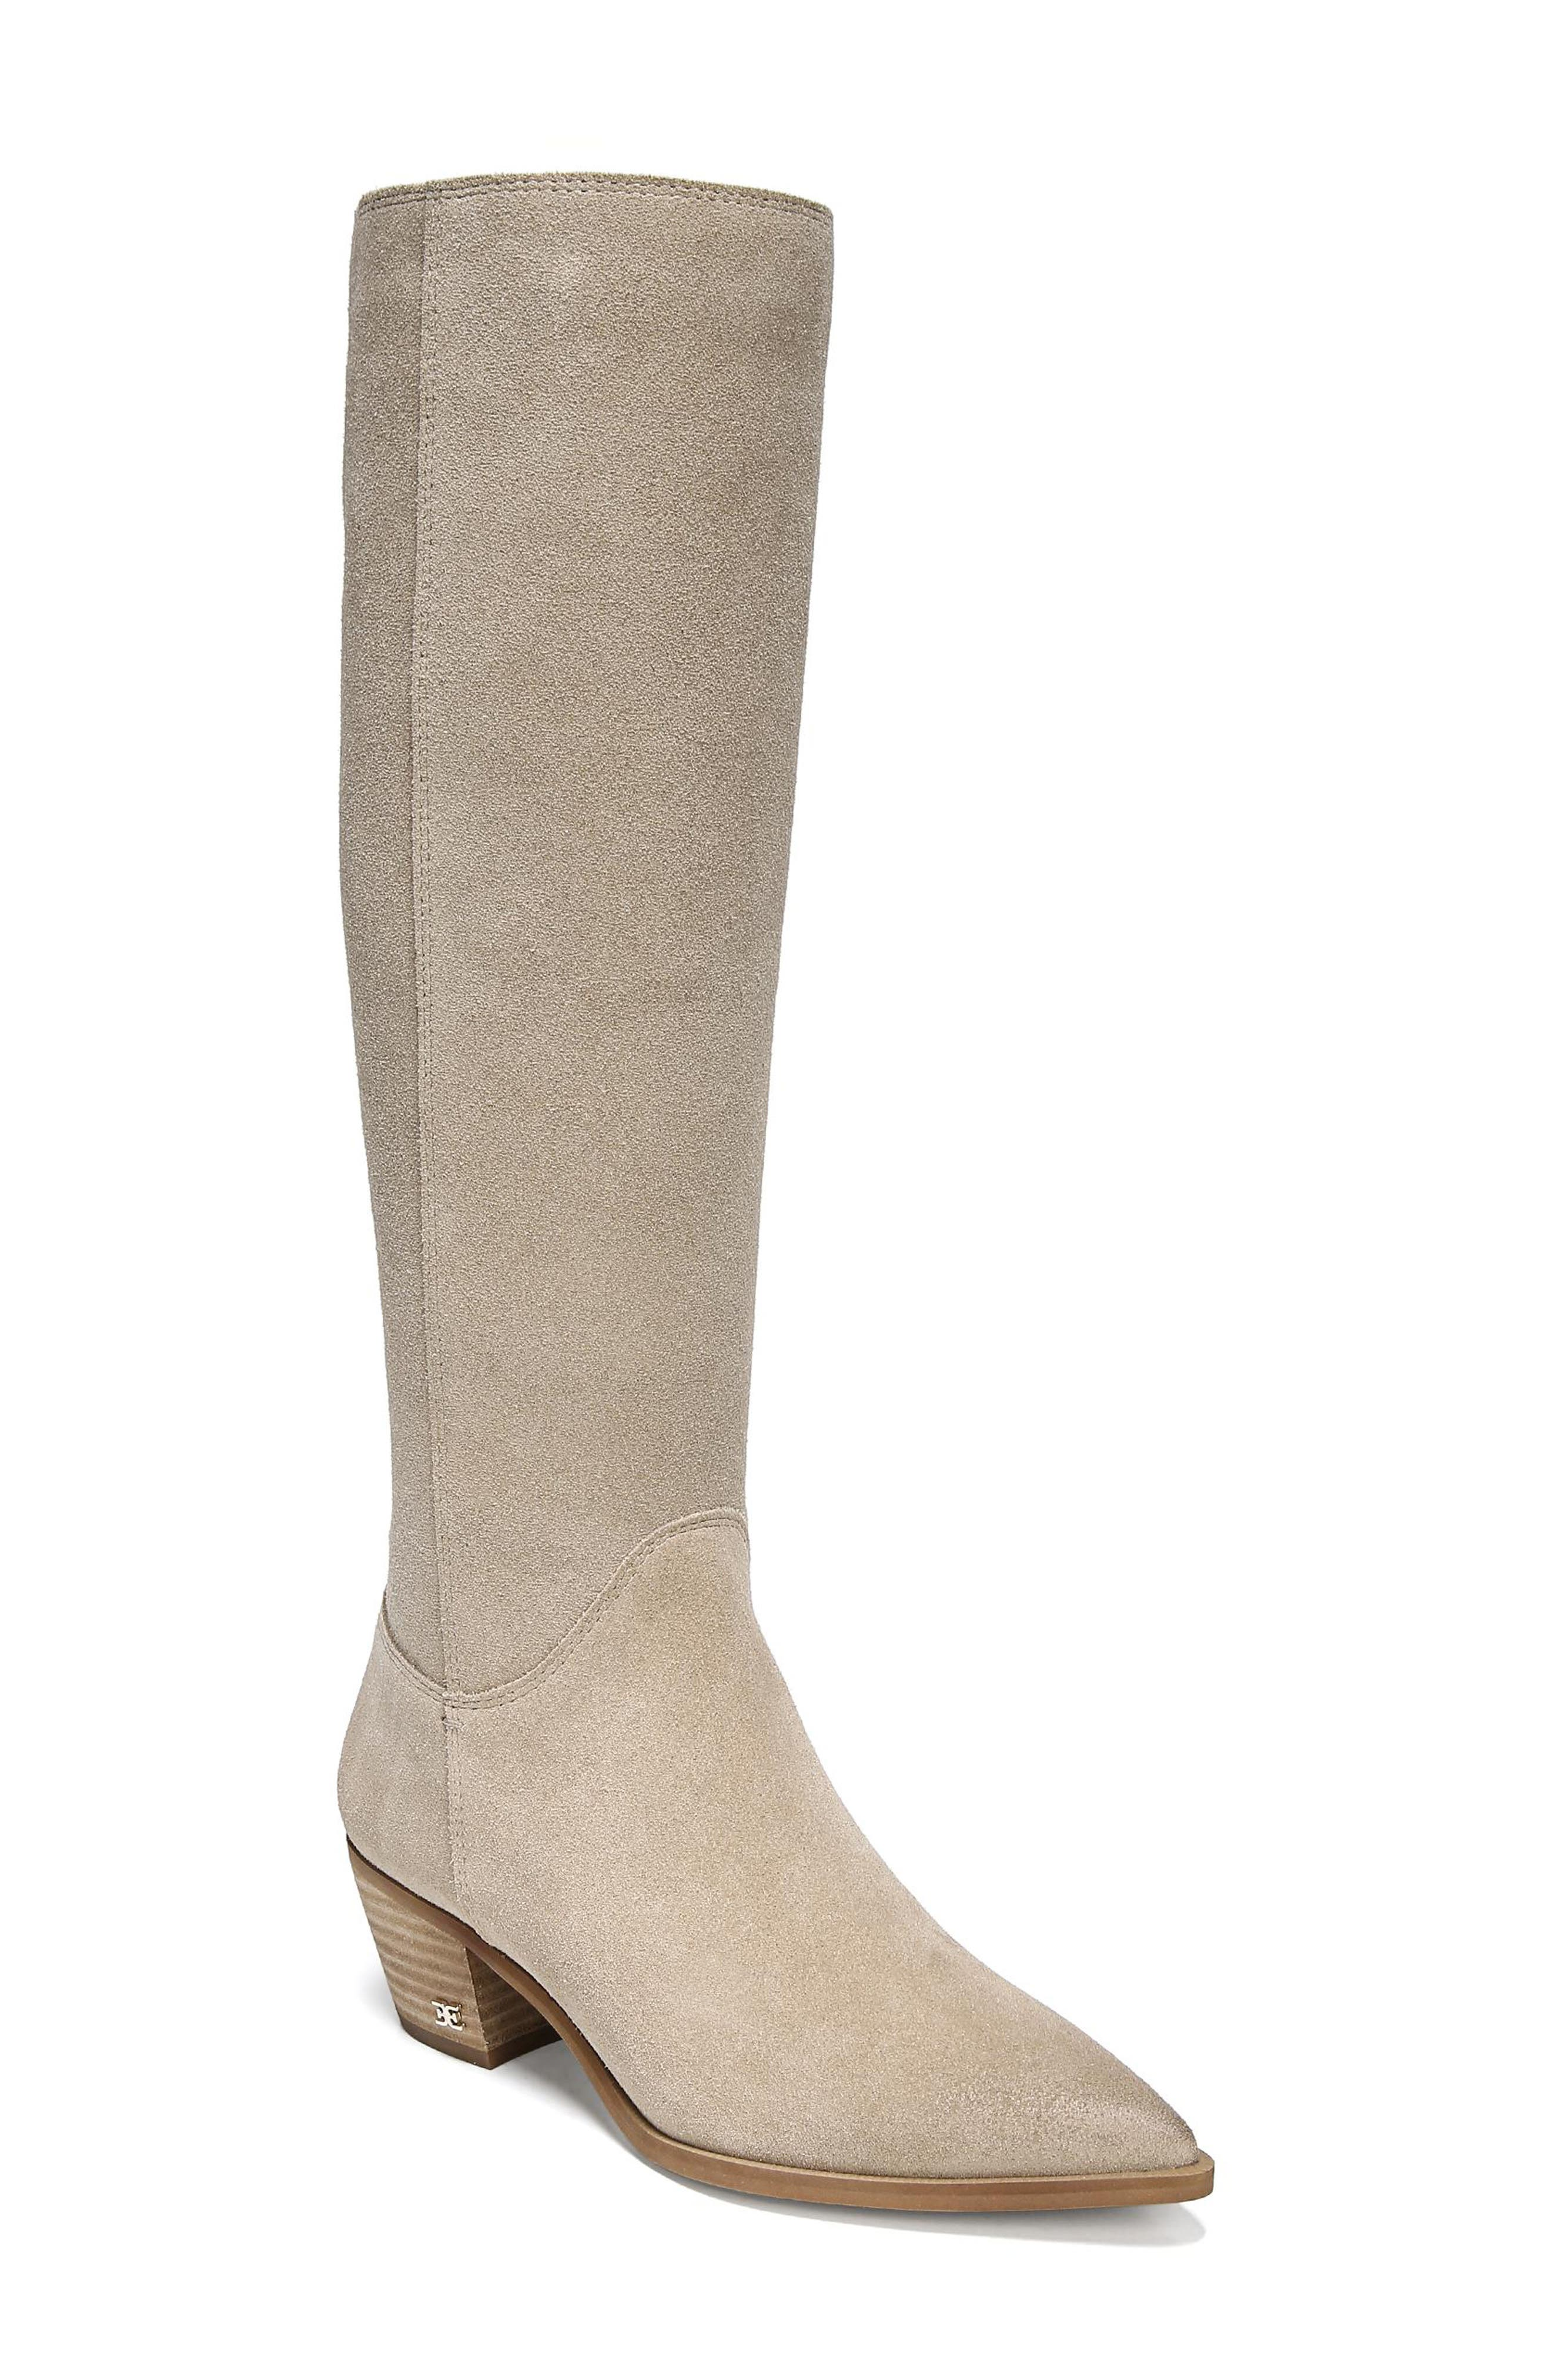 Sam Edelman Rowena Knee High Boot, Beige